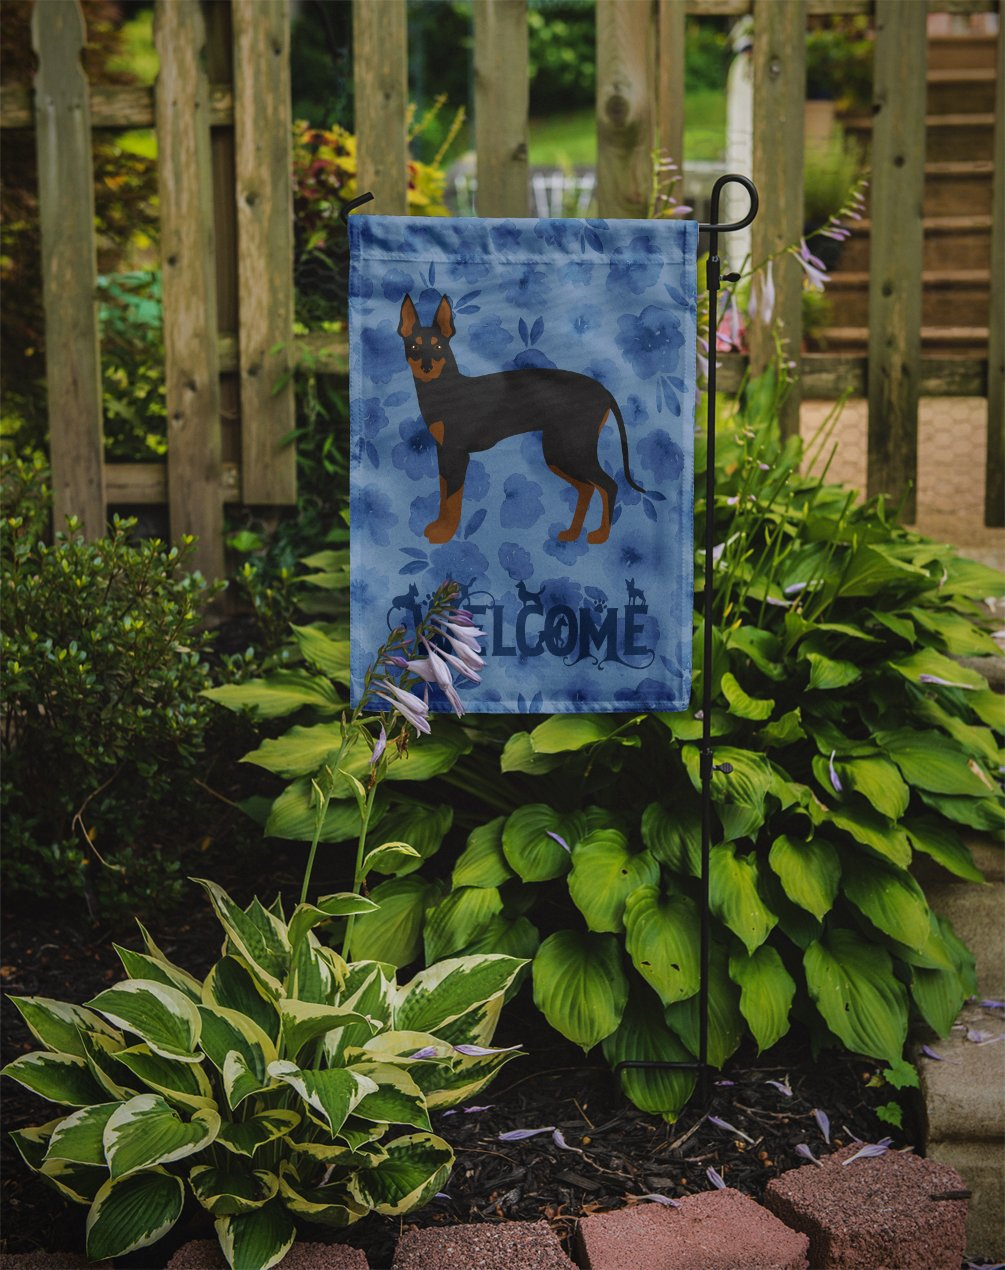 English Toy Terrier #2 Welcome Flag Garden Size CK5989GF by Caroline's Treasures